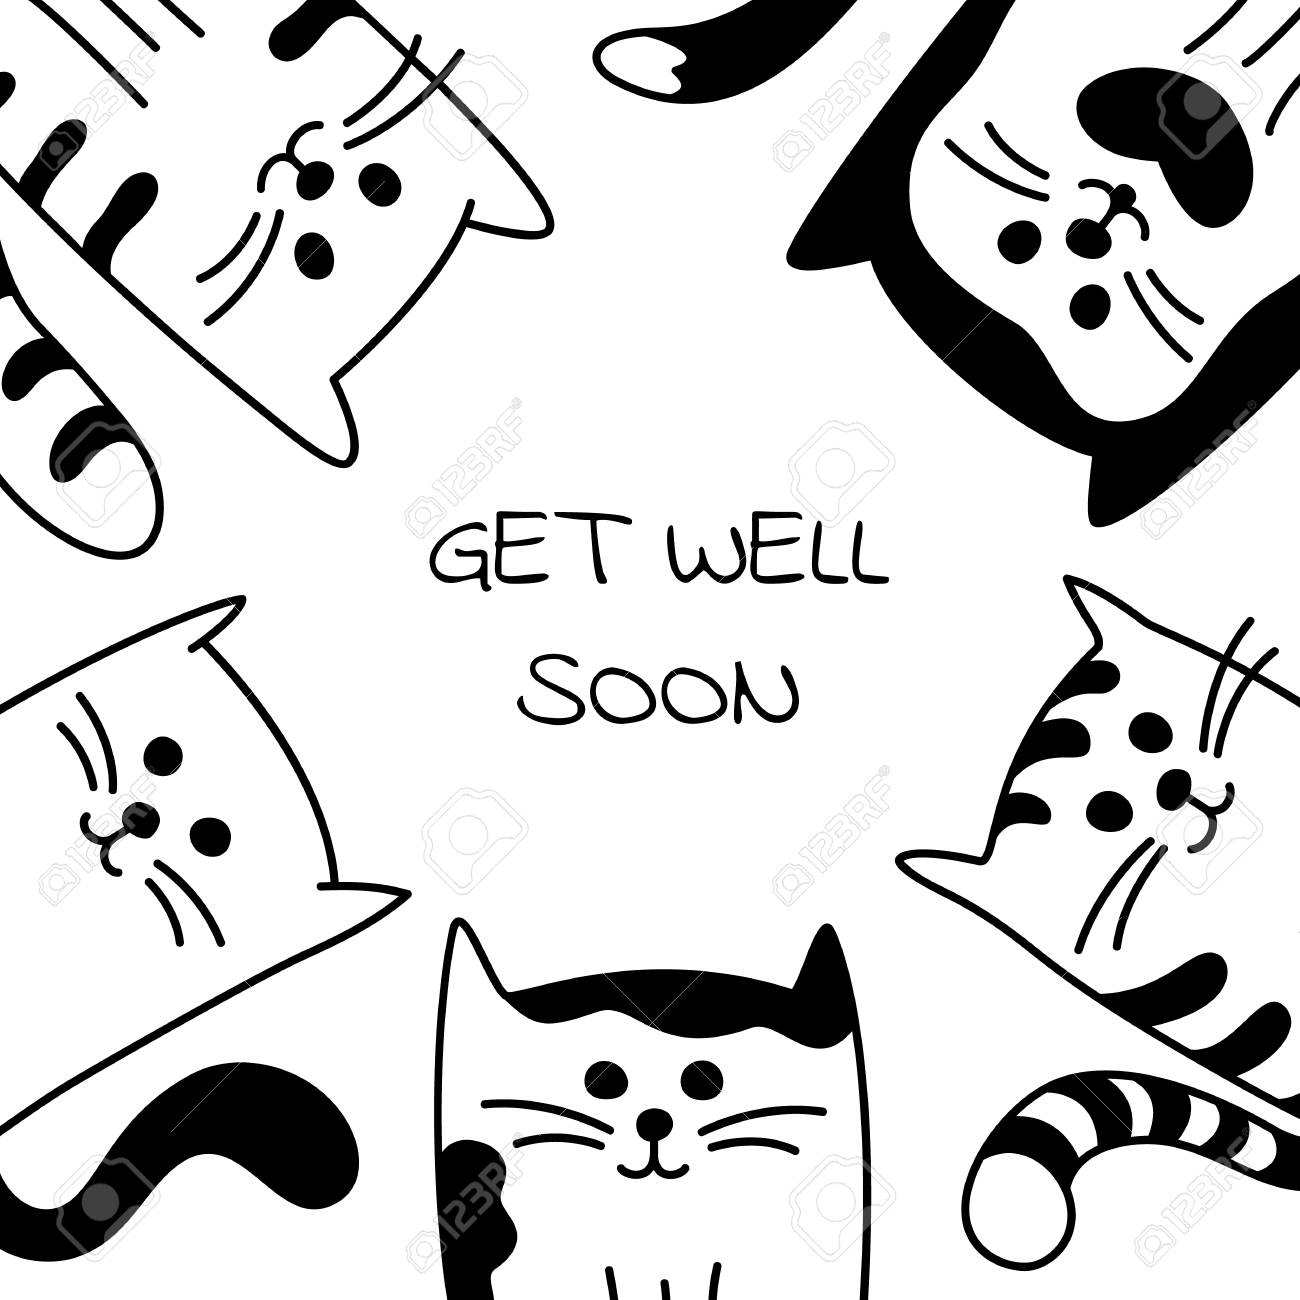 vector vector background with words get well soon and hand drawn cartoon black and white cats or kittens may be used as a encouragement card